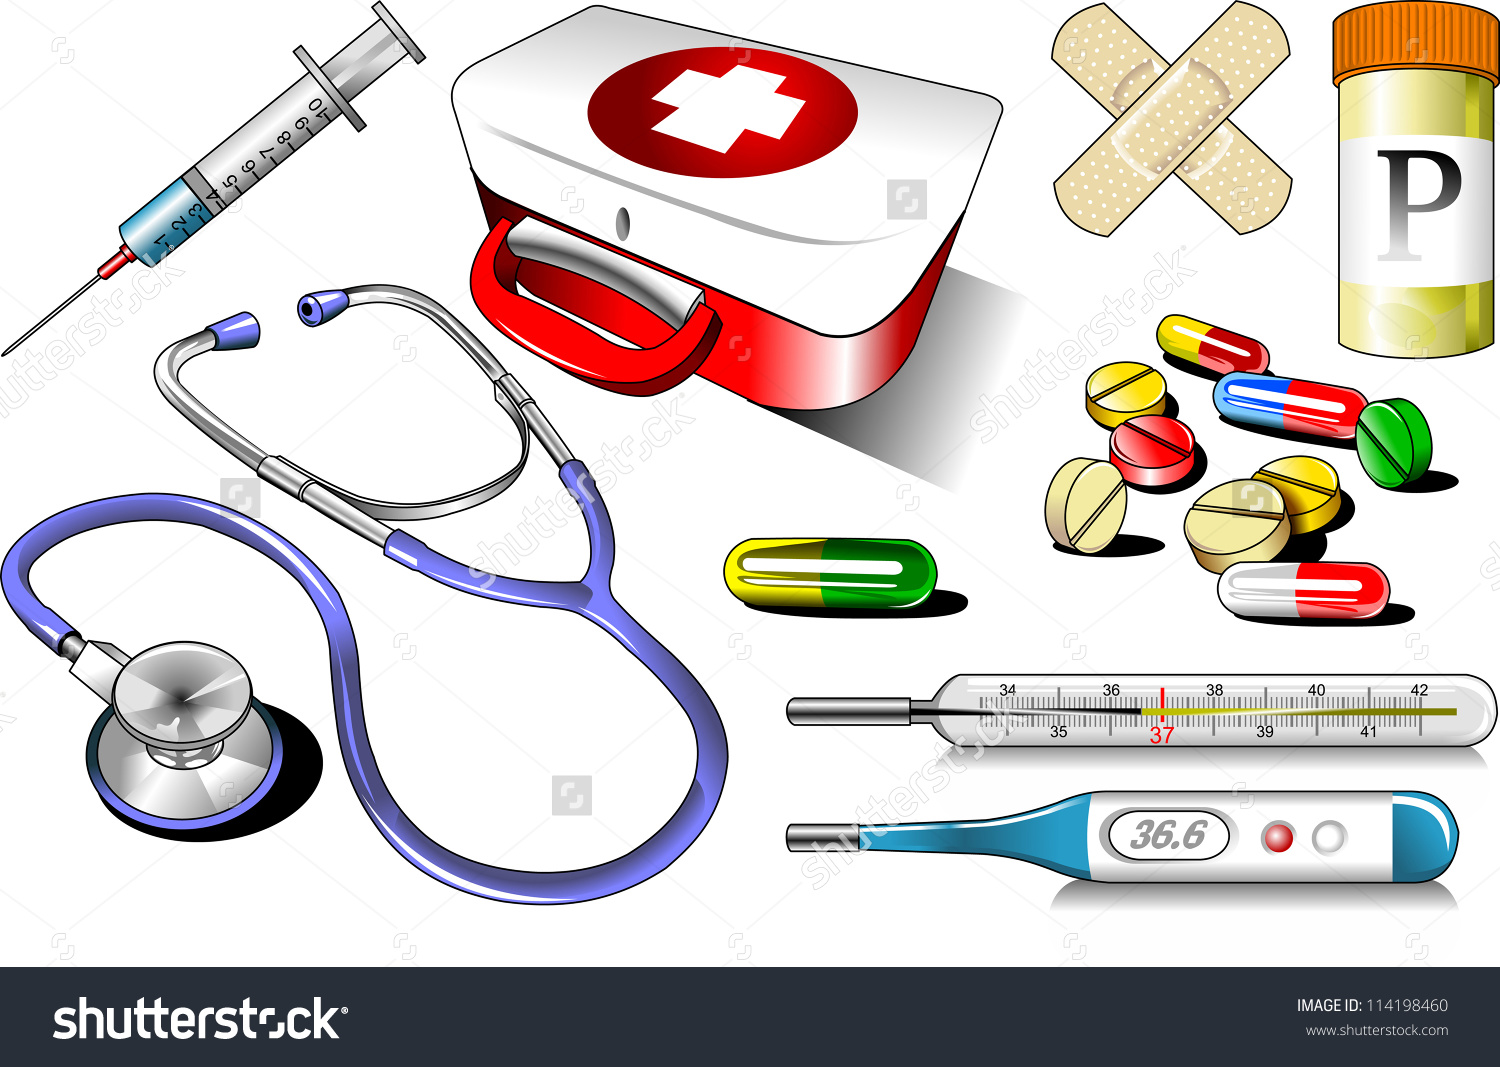 medical technical equipment clipart clipground